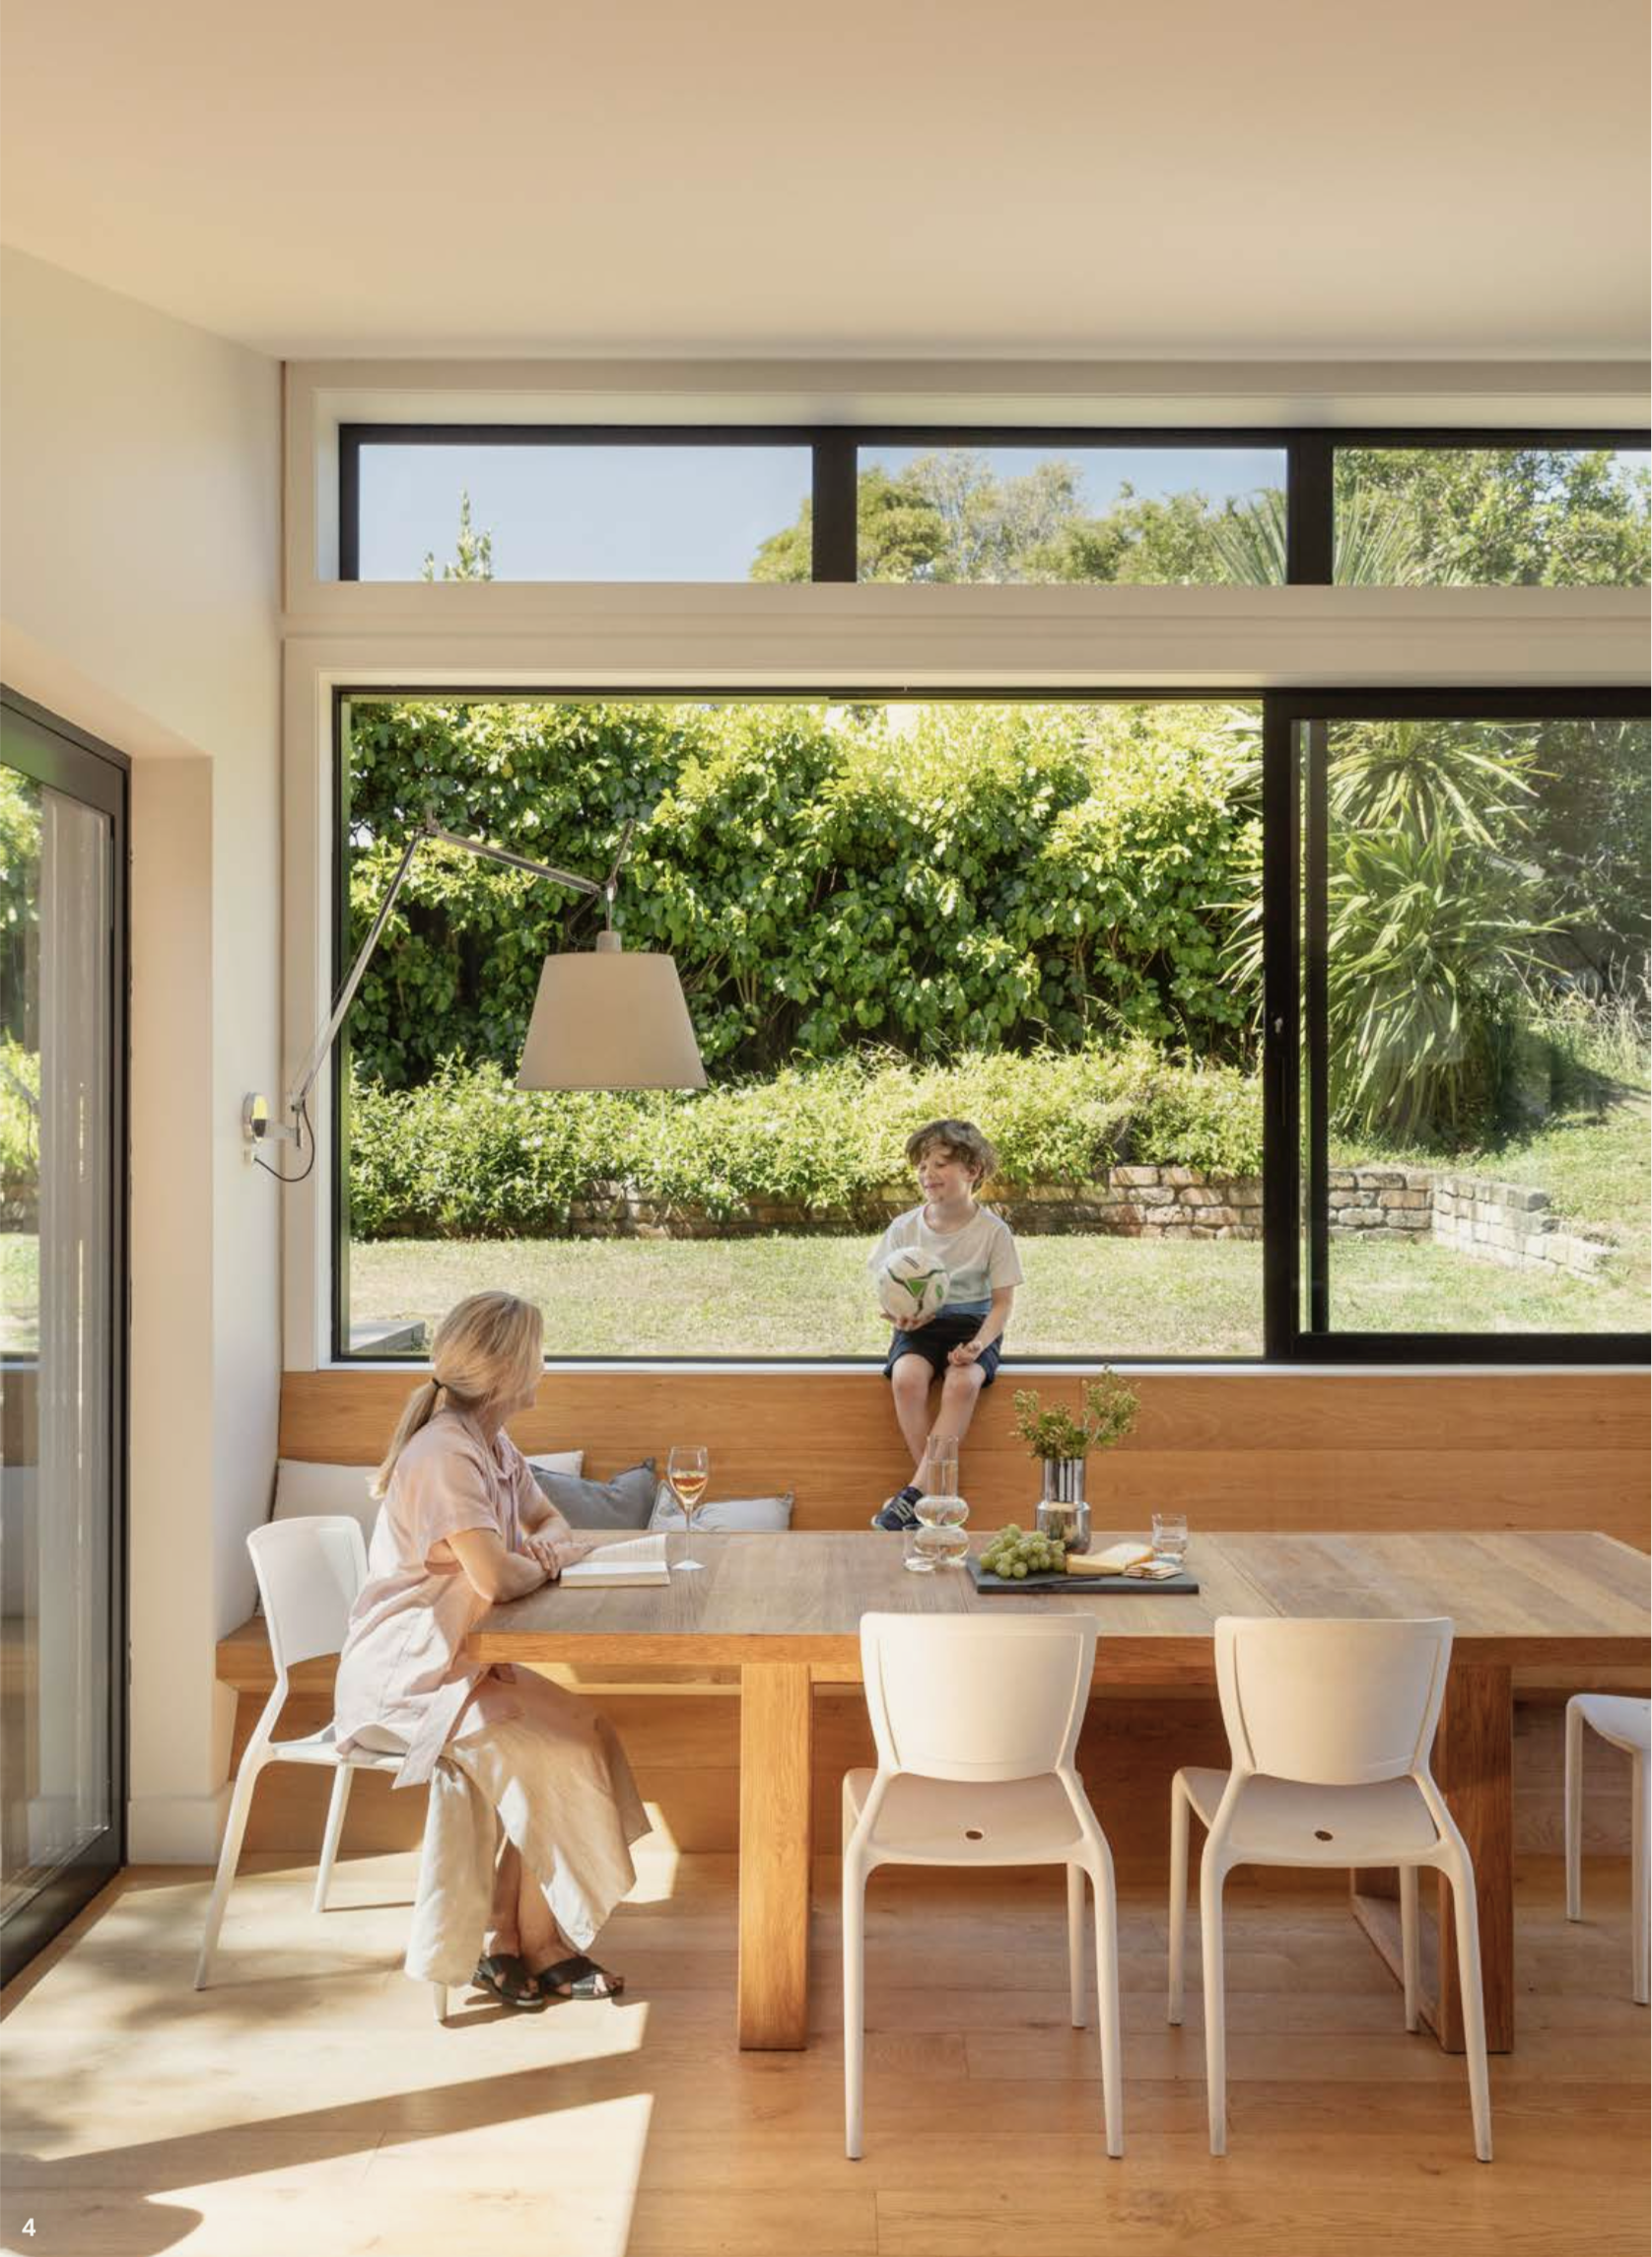 - Our Eden Terrace project featured in HOME's renovation special, found in the February edition of the magazine. Read the article here.February 2019